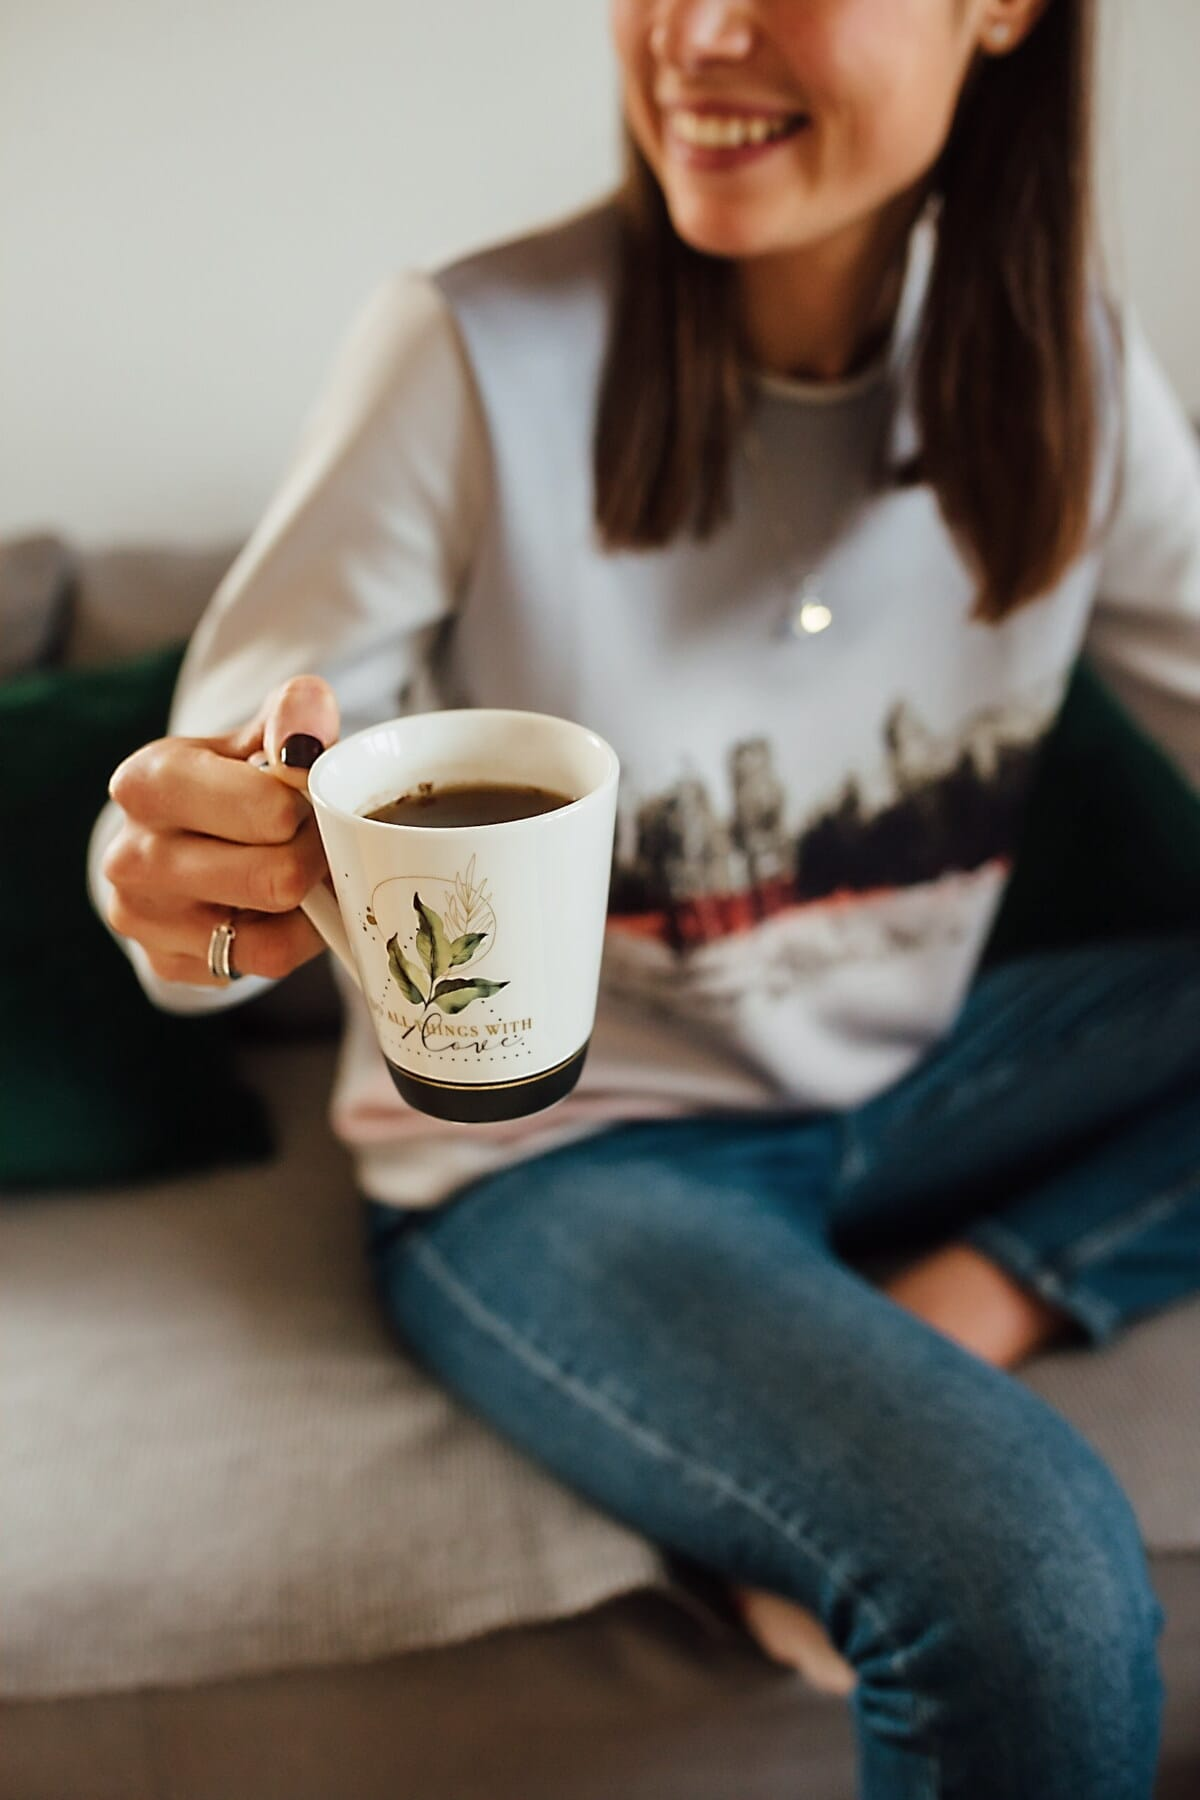 coffee mug, coffee, caffeine, cappuccino, teenager, young woman, relaxation, espresso, beverage, indoors